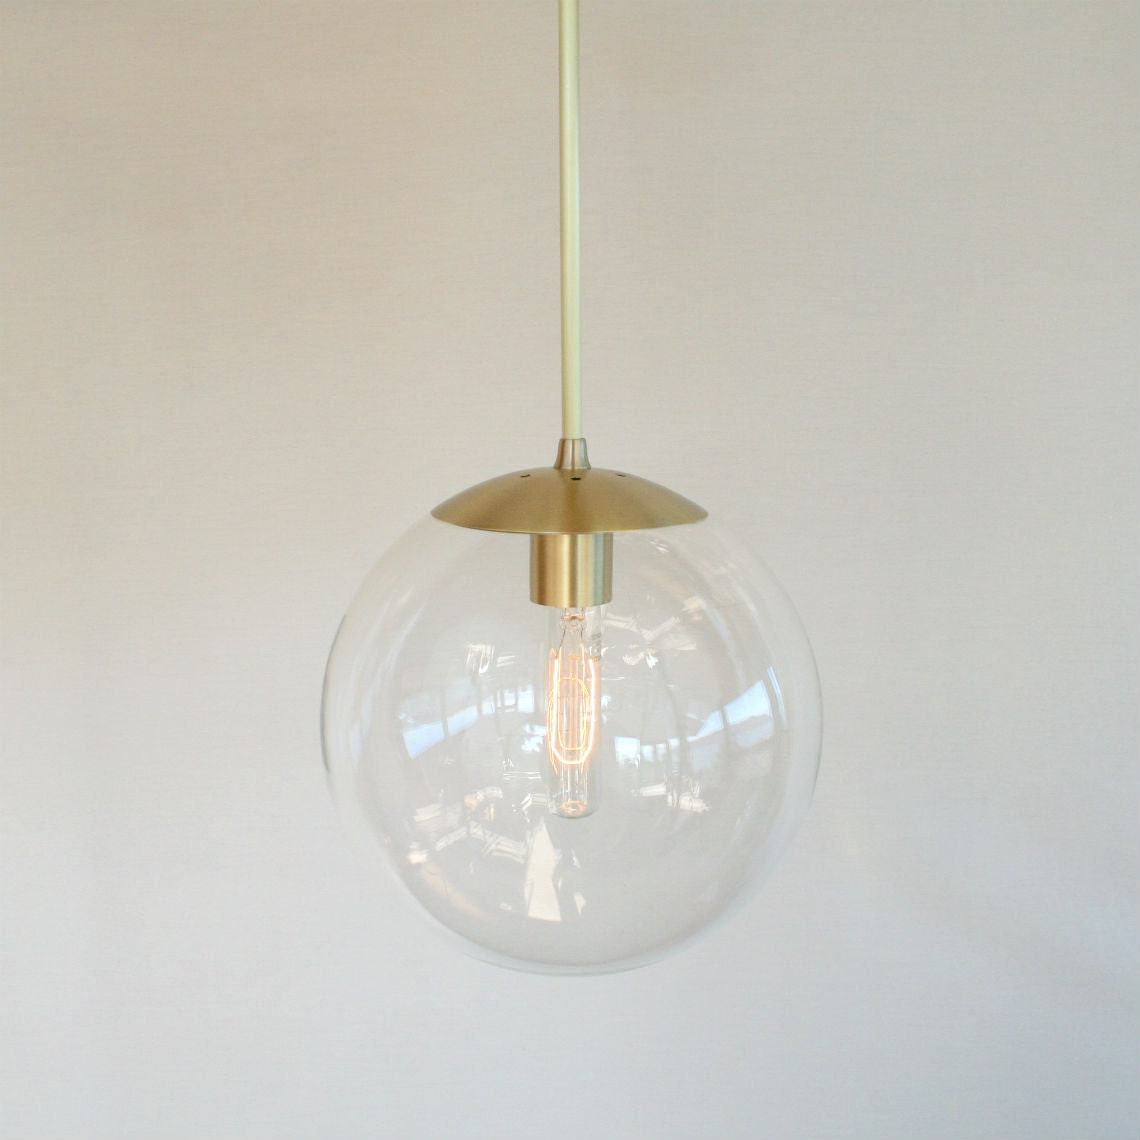 mid century modern 10 globe pendant light clear glass ForMid Century Modern Globe Pendant Light